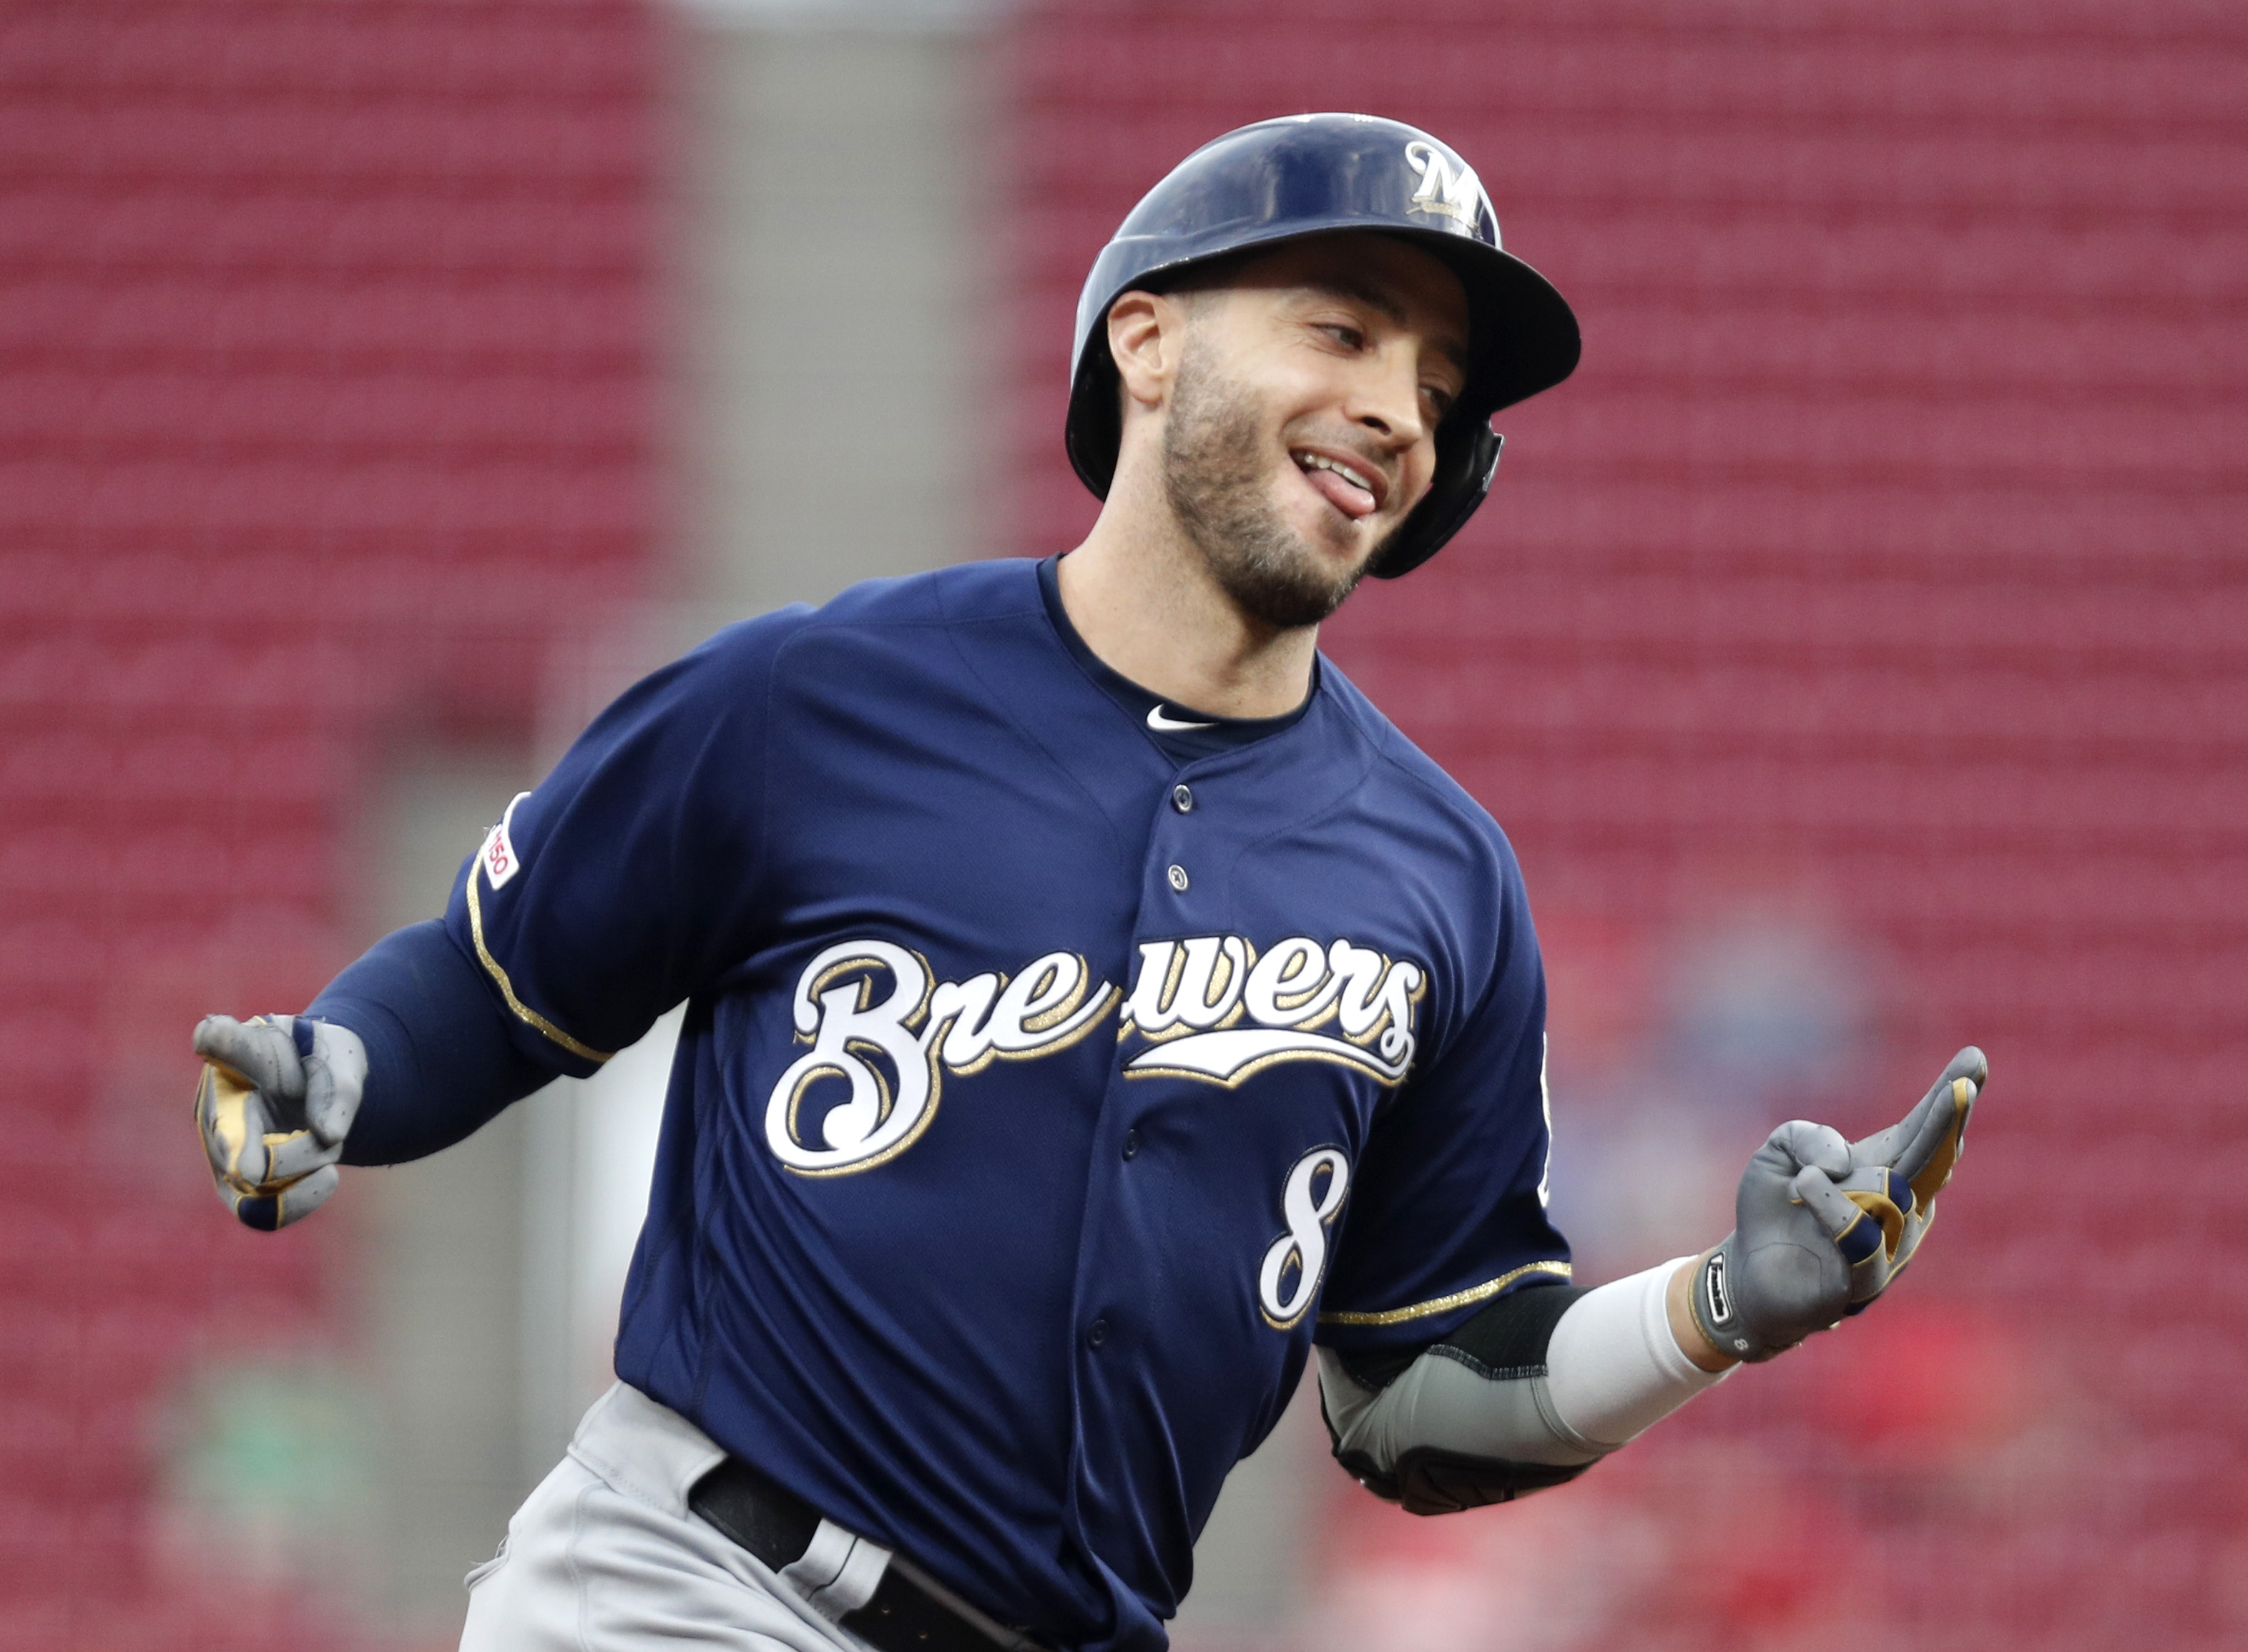 Milwaukee Brewers and Washington Nationals clinch National League playoff spots